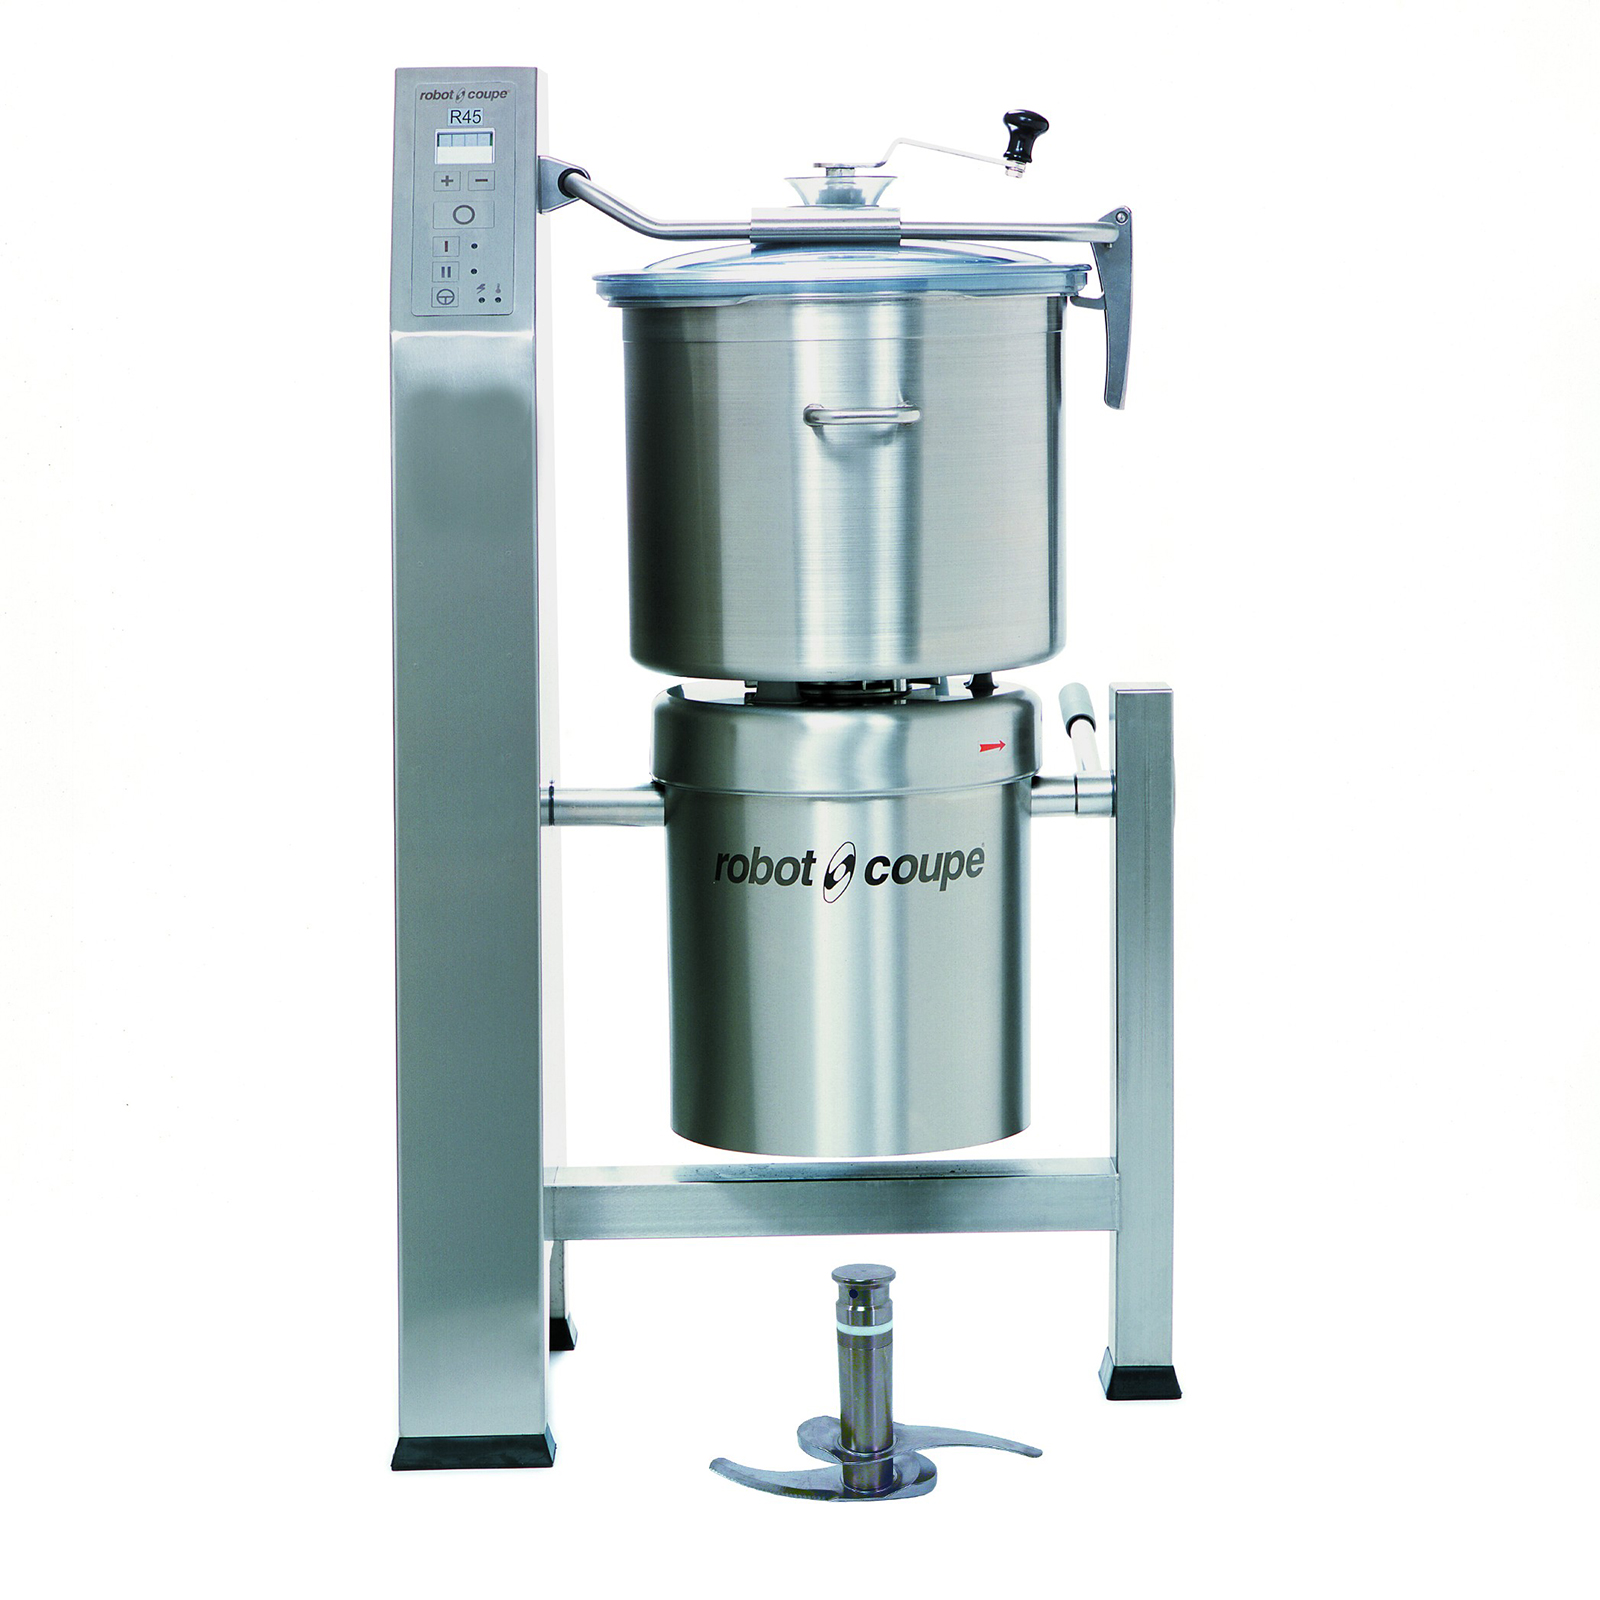 Robot Coupe BLIXER 45 food processor, floor model